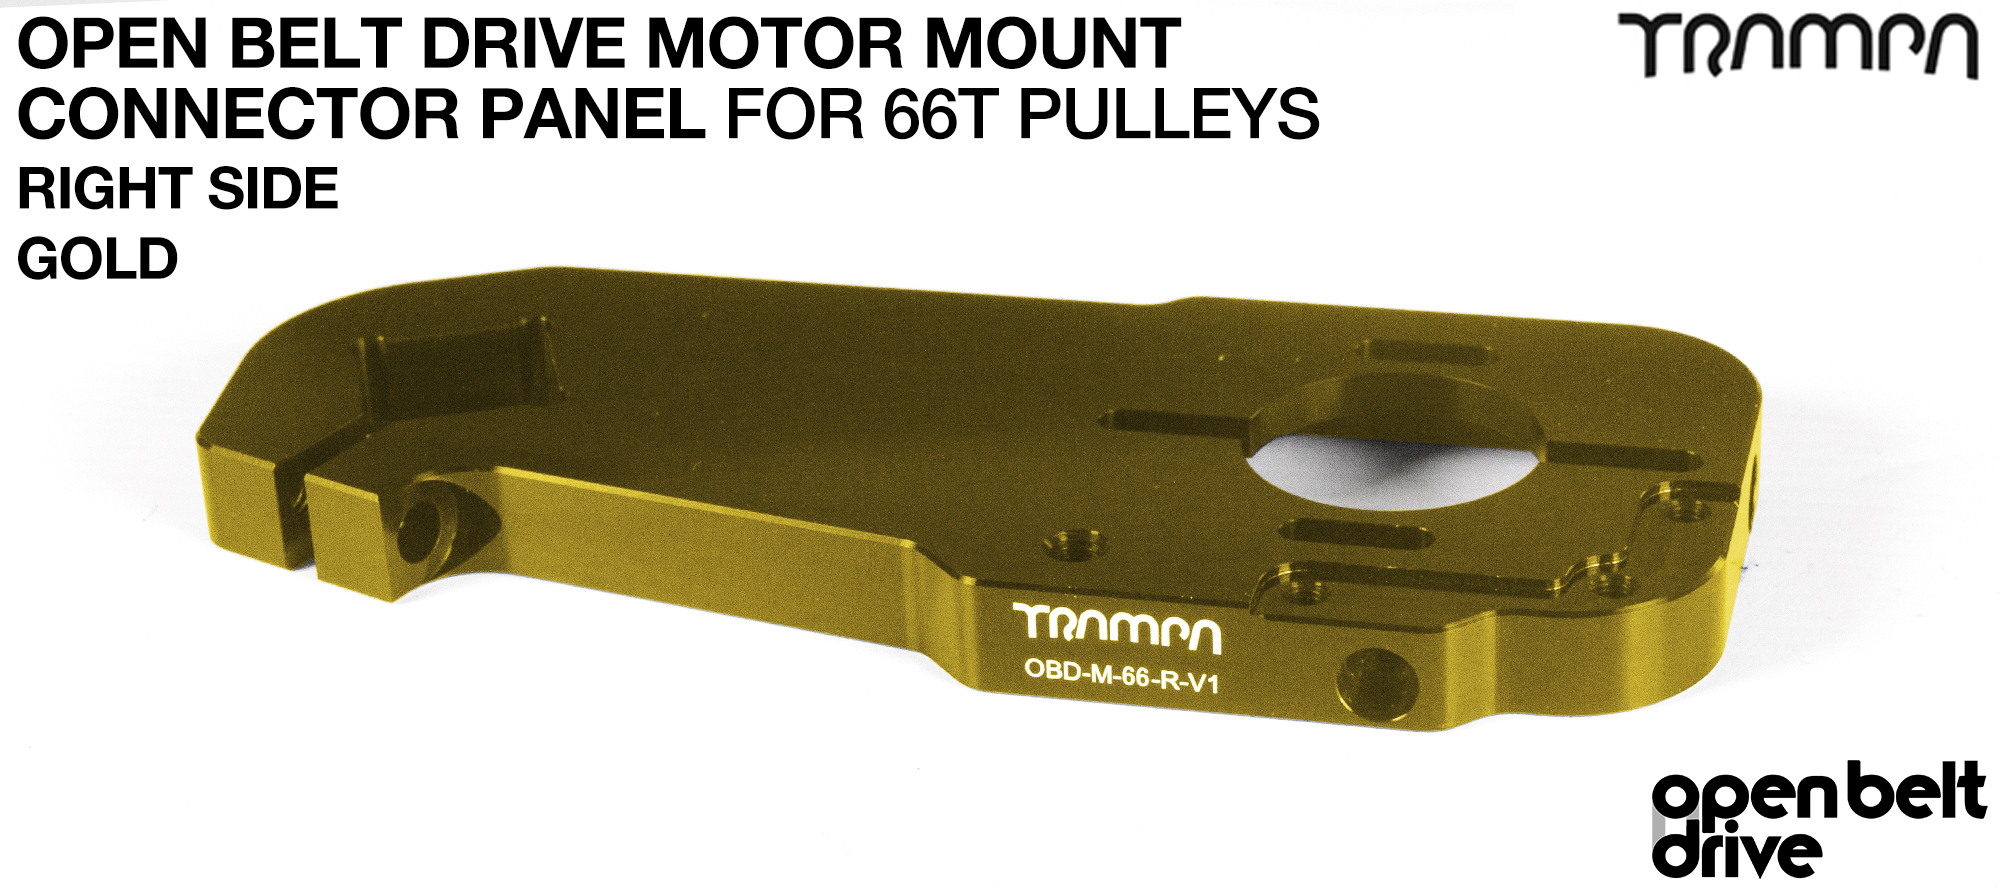 OBD Open Belt Drive Motor Mount Connector Panel for 66 tooth Pulleys - GOOFY - GOLD